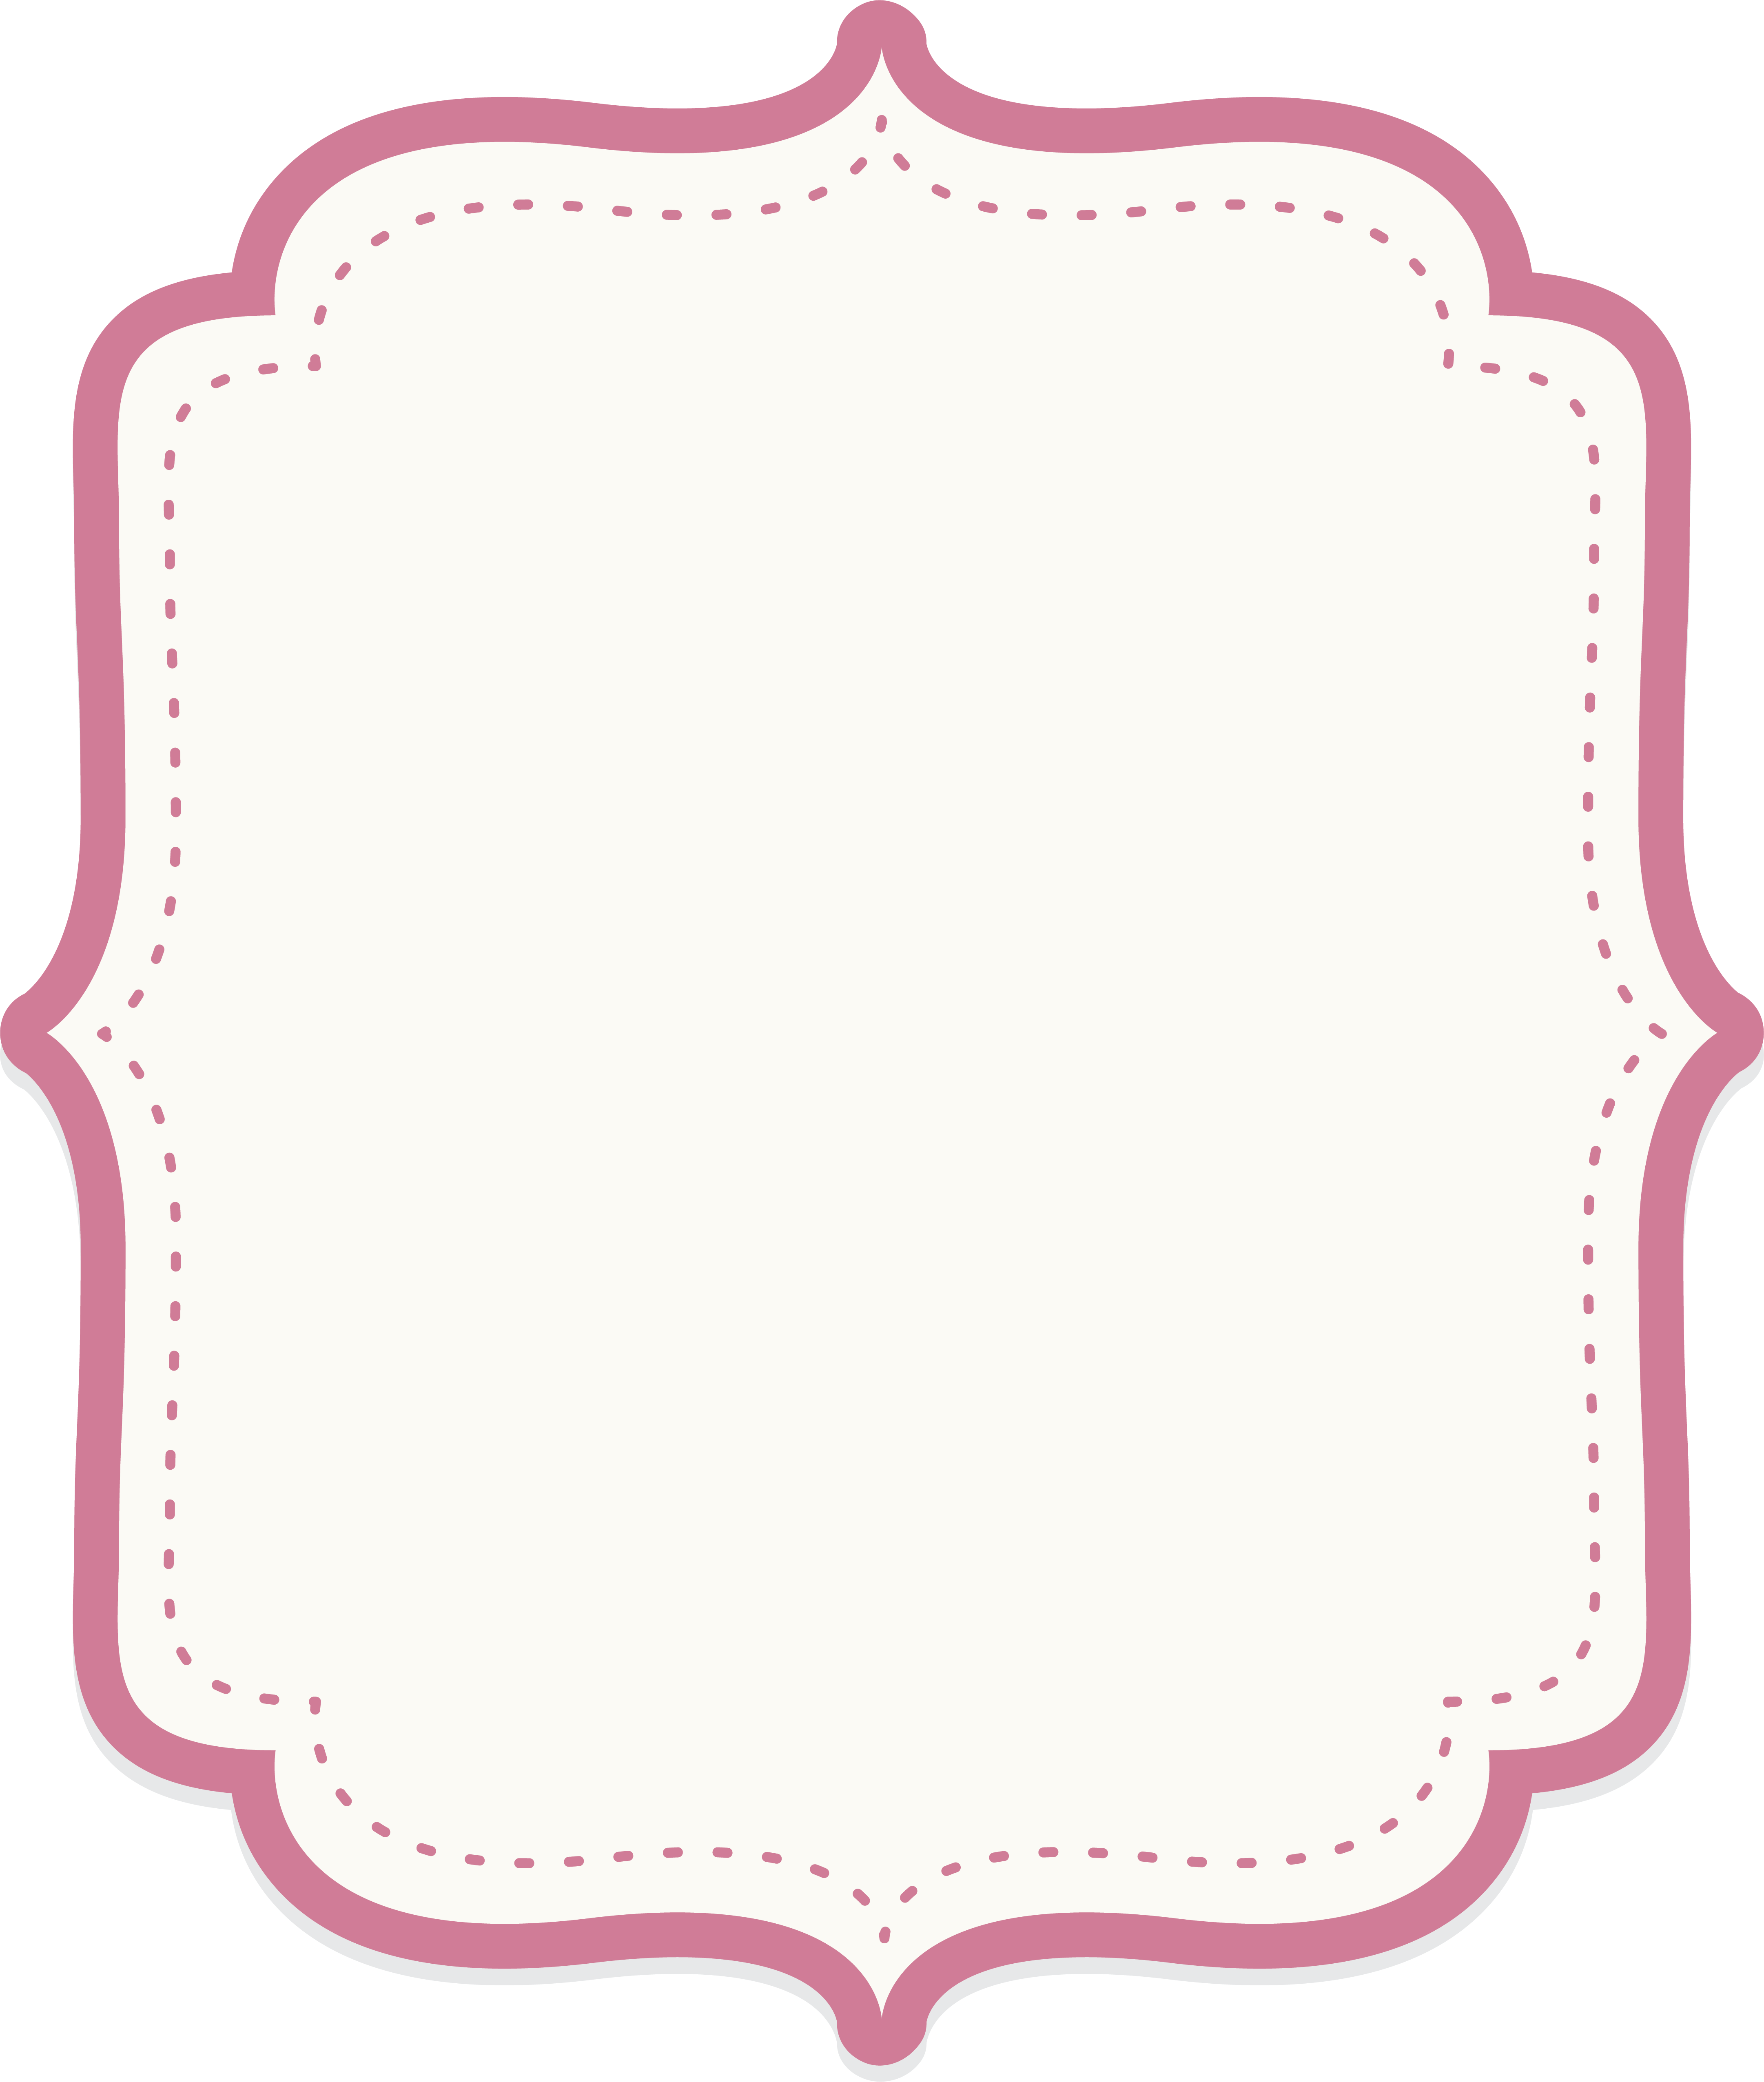 Text border png. Icon cute baby powder